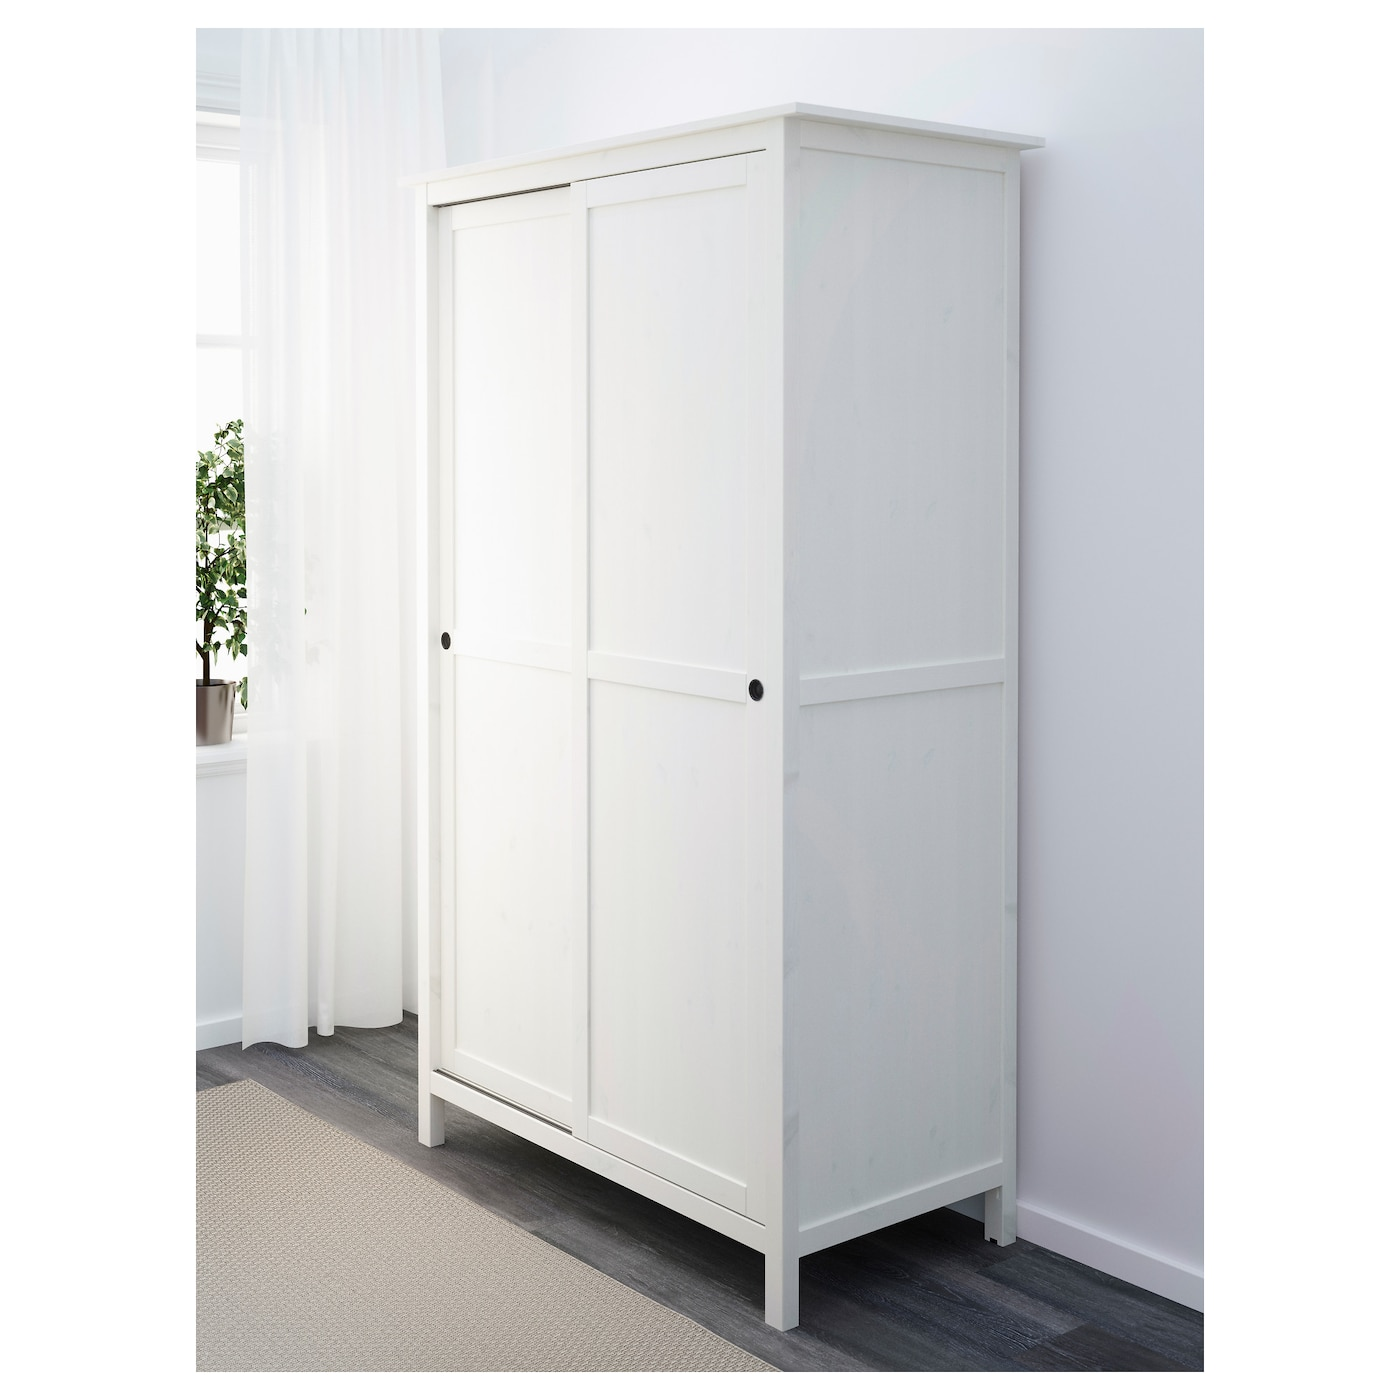 space pax white wardrobes spr since en fitted where auli narrow glass with gb frame doors wardrobe is mirror limited perfect sliding door products ikea the